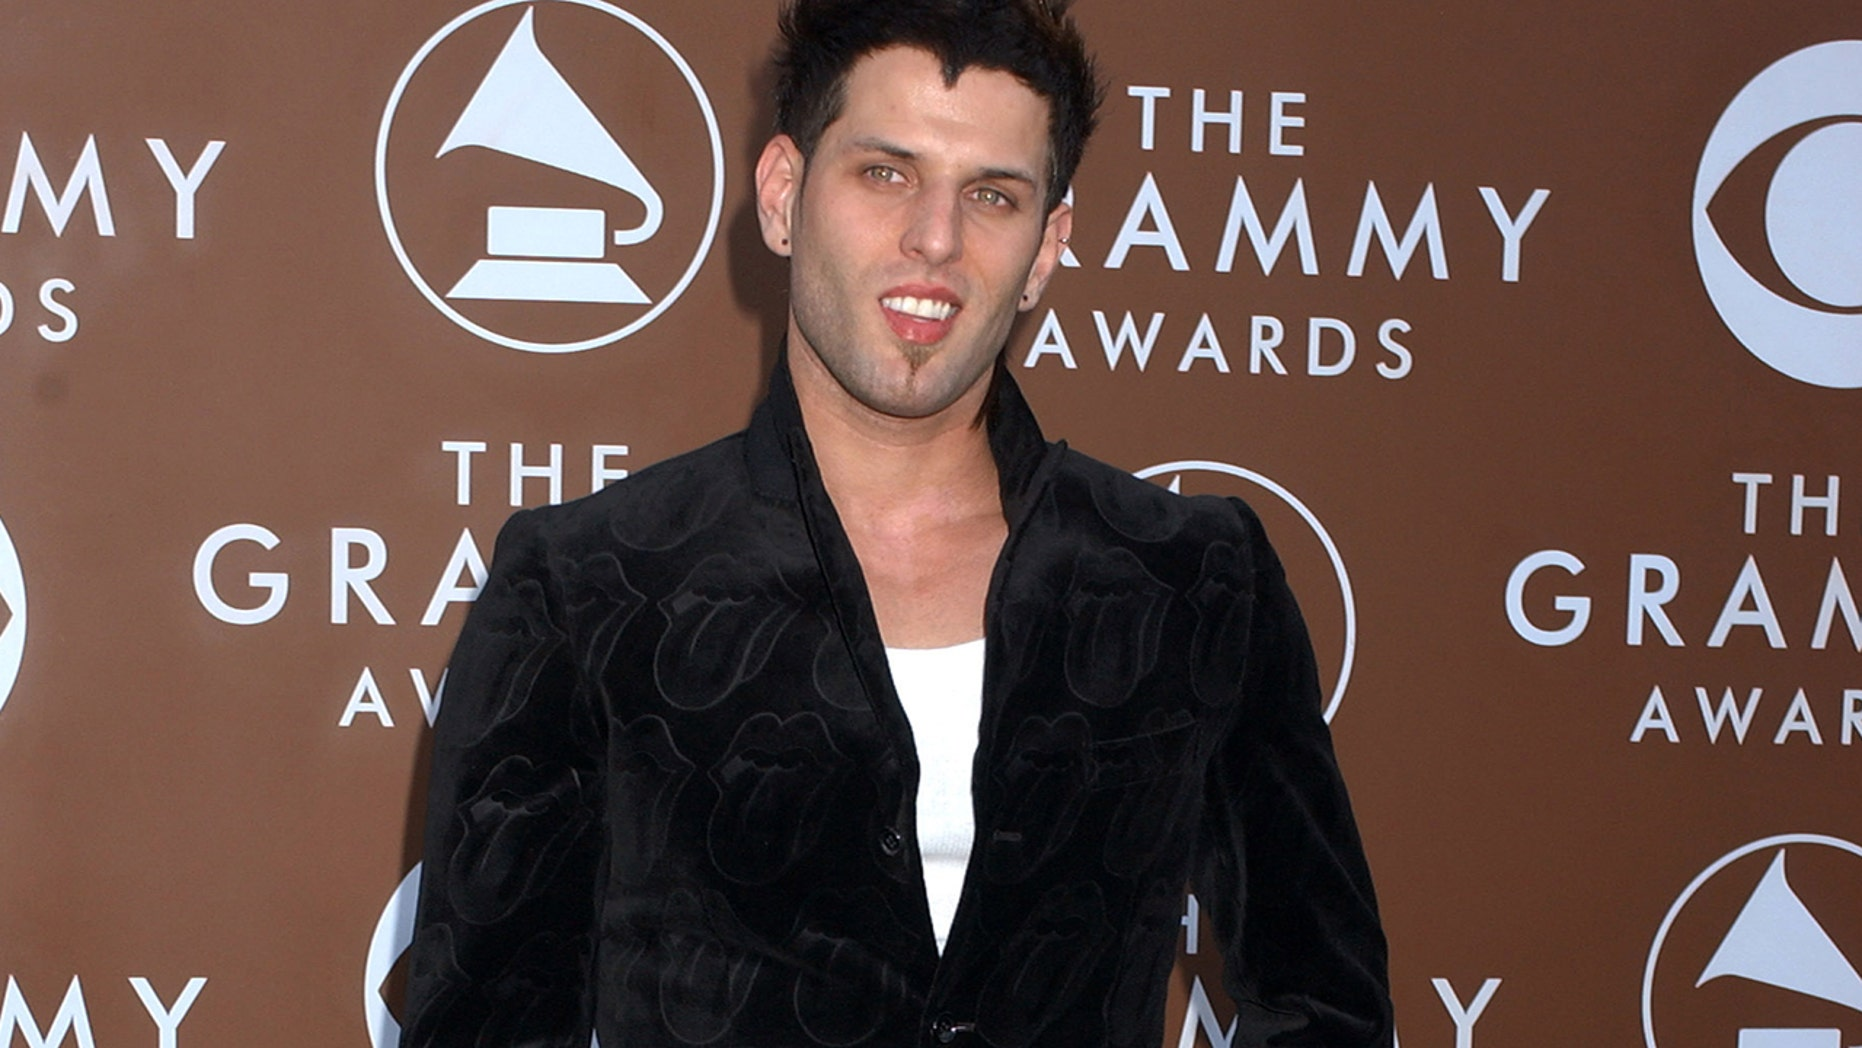 Devin Lima of 90s boy band LFO dies after cancer battle